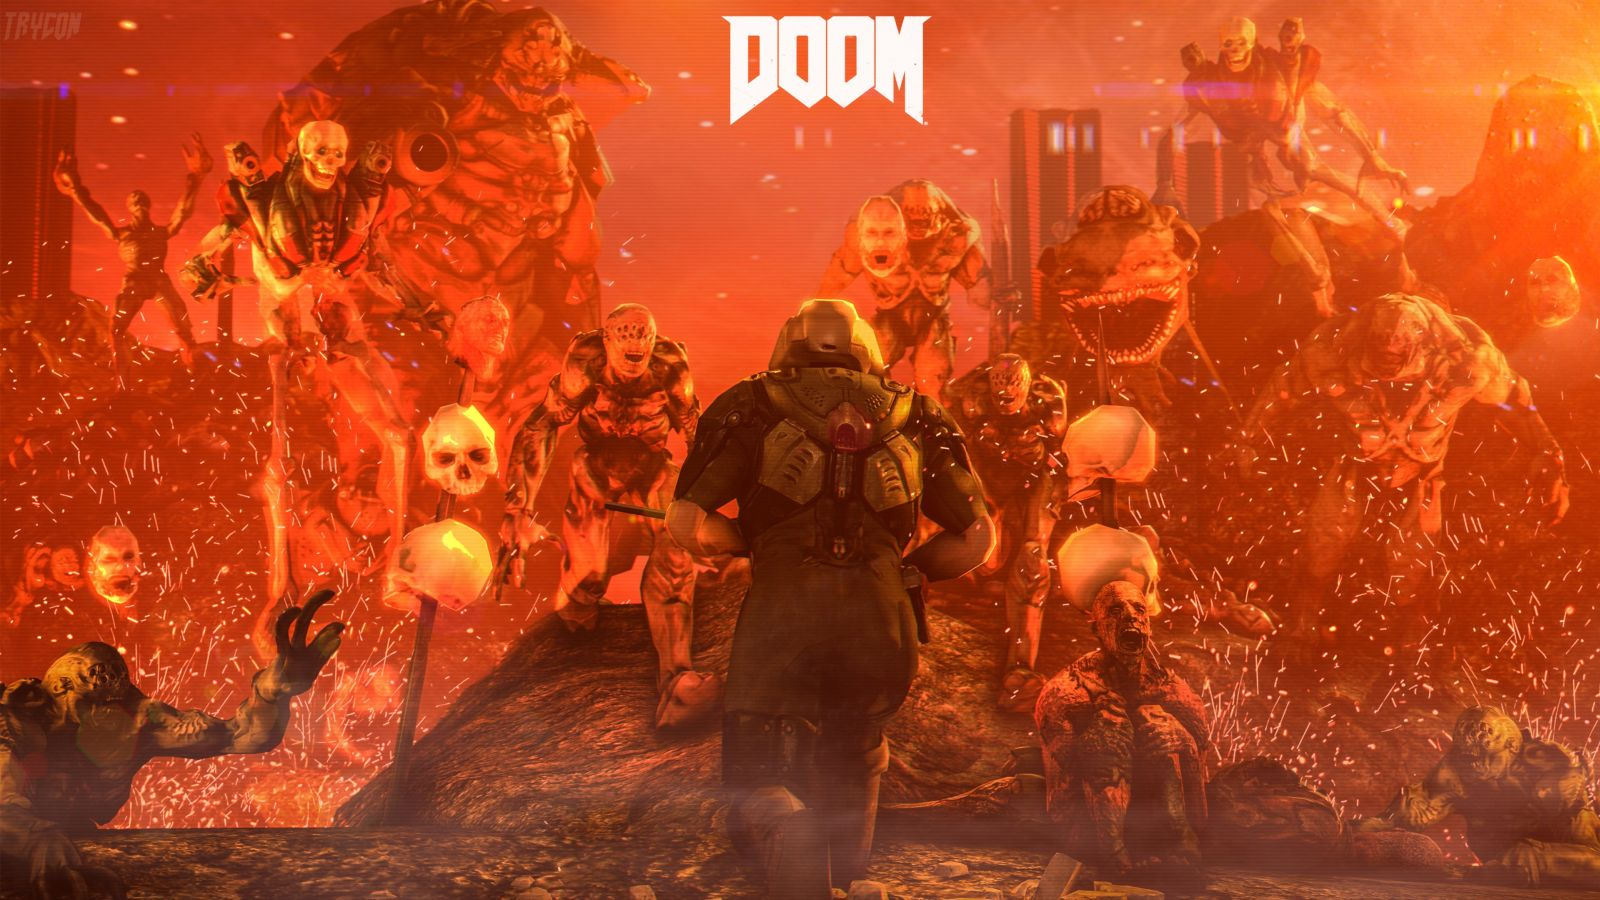 doom-4-digital-art-wallpaper